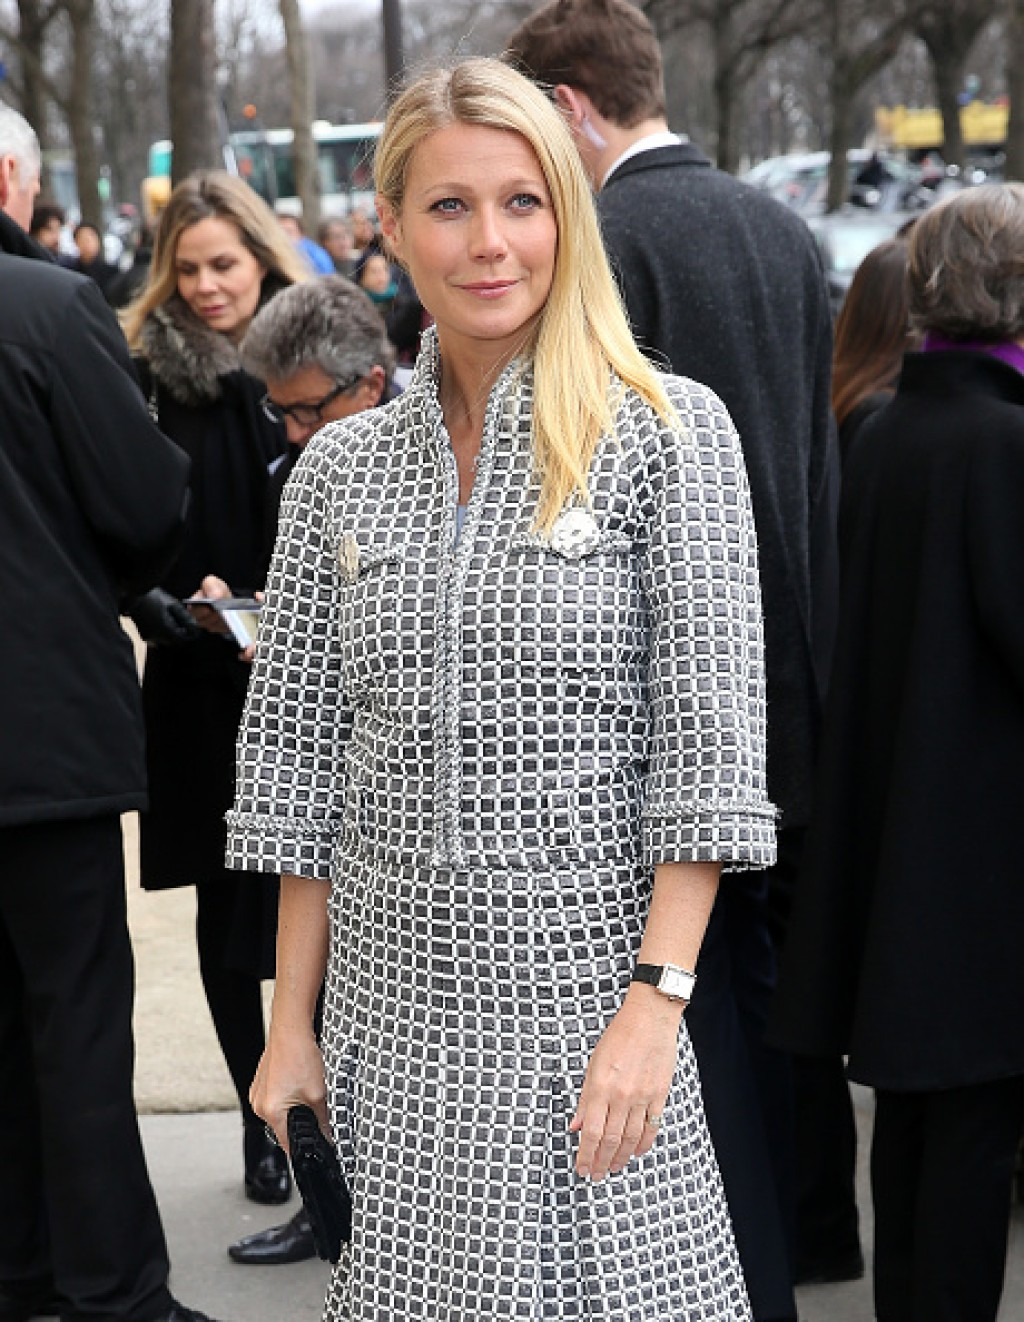 Chanel-Outside-Arrivals-Paris-Fashion-Week-Gwyneth-Half-1024x1322